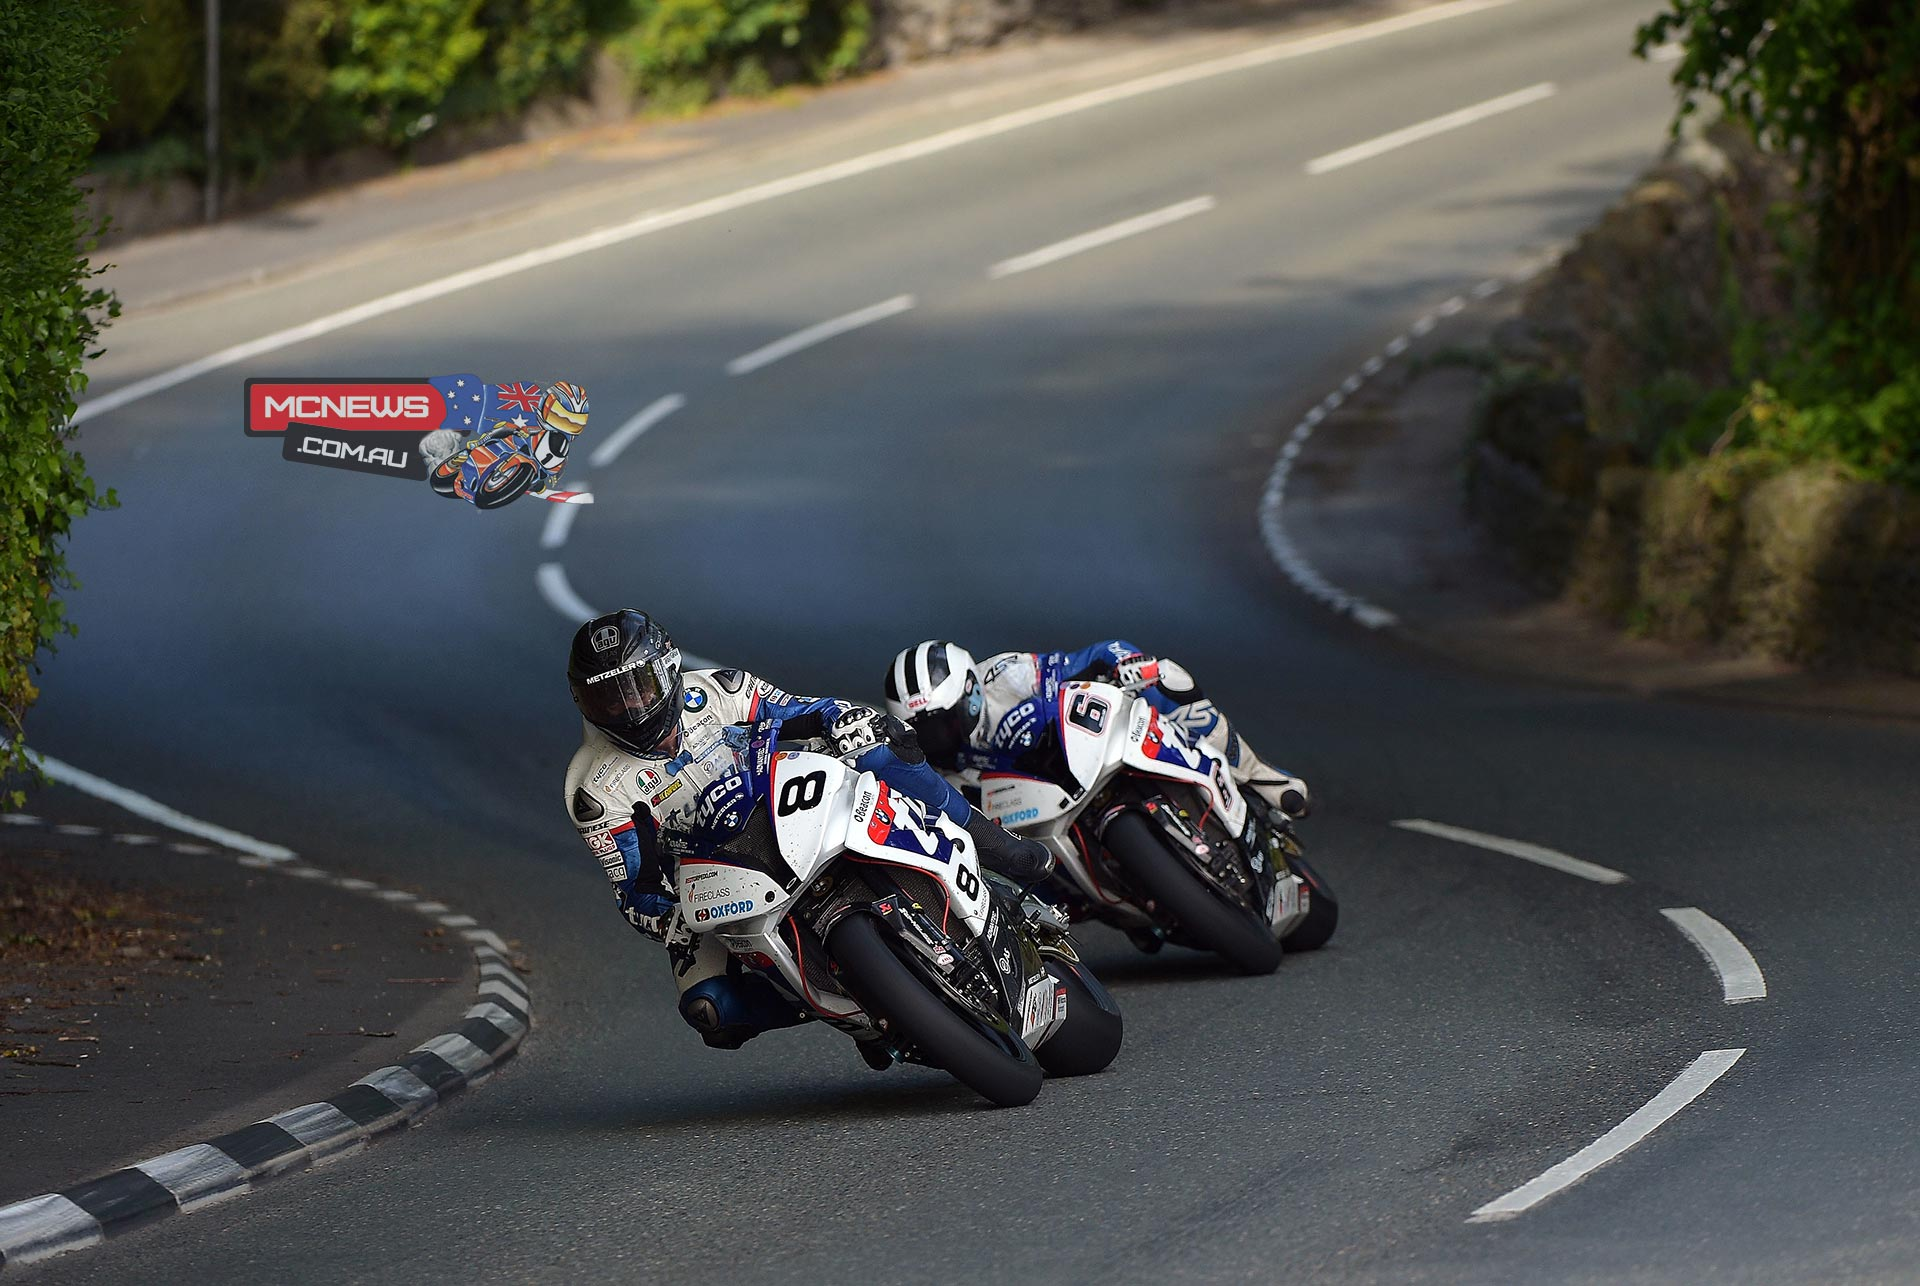 Guy-Martin-William-Dunlop-IOM-TT-TT-IOM-Isle-of-Man-Isle-of-Man-TT